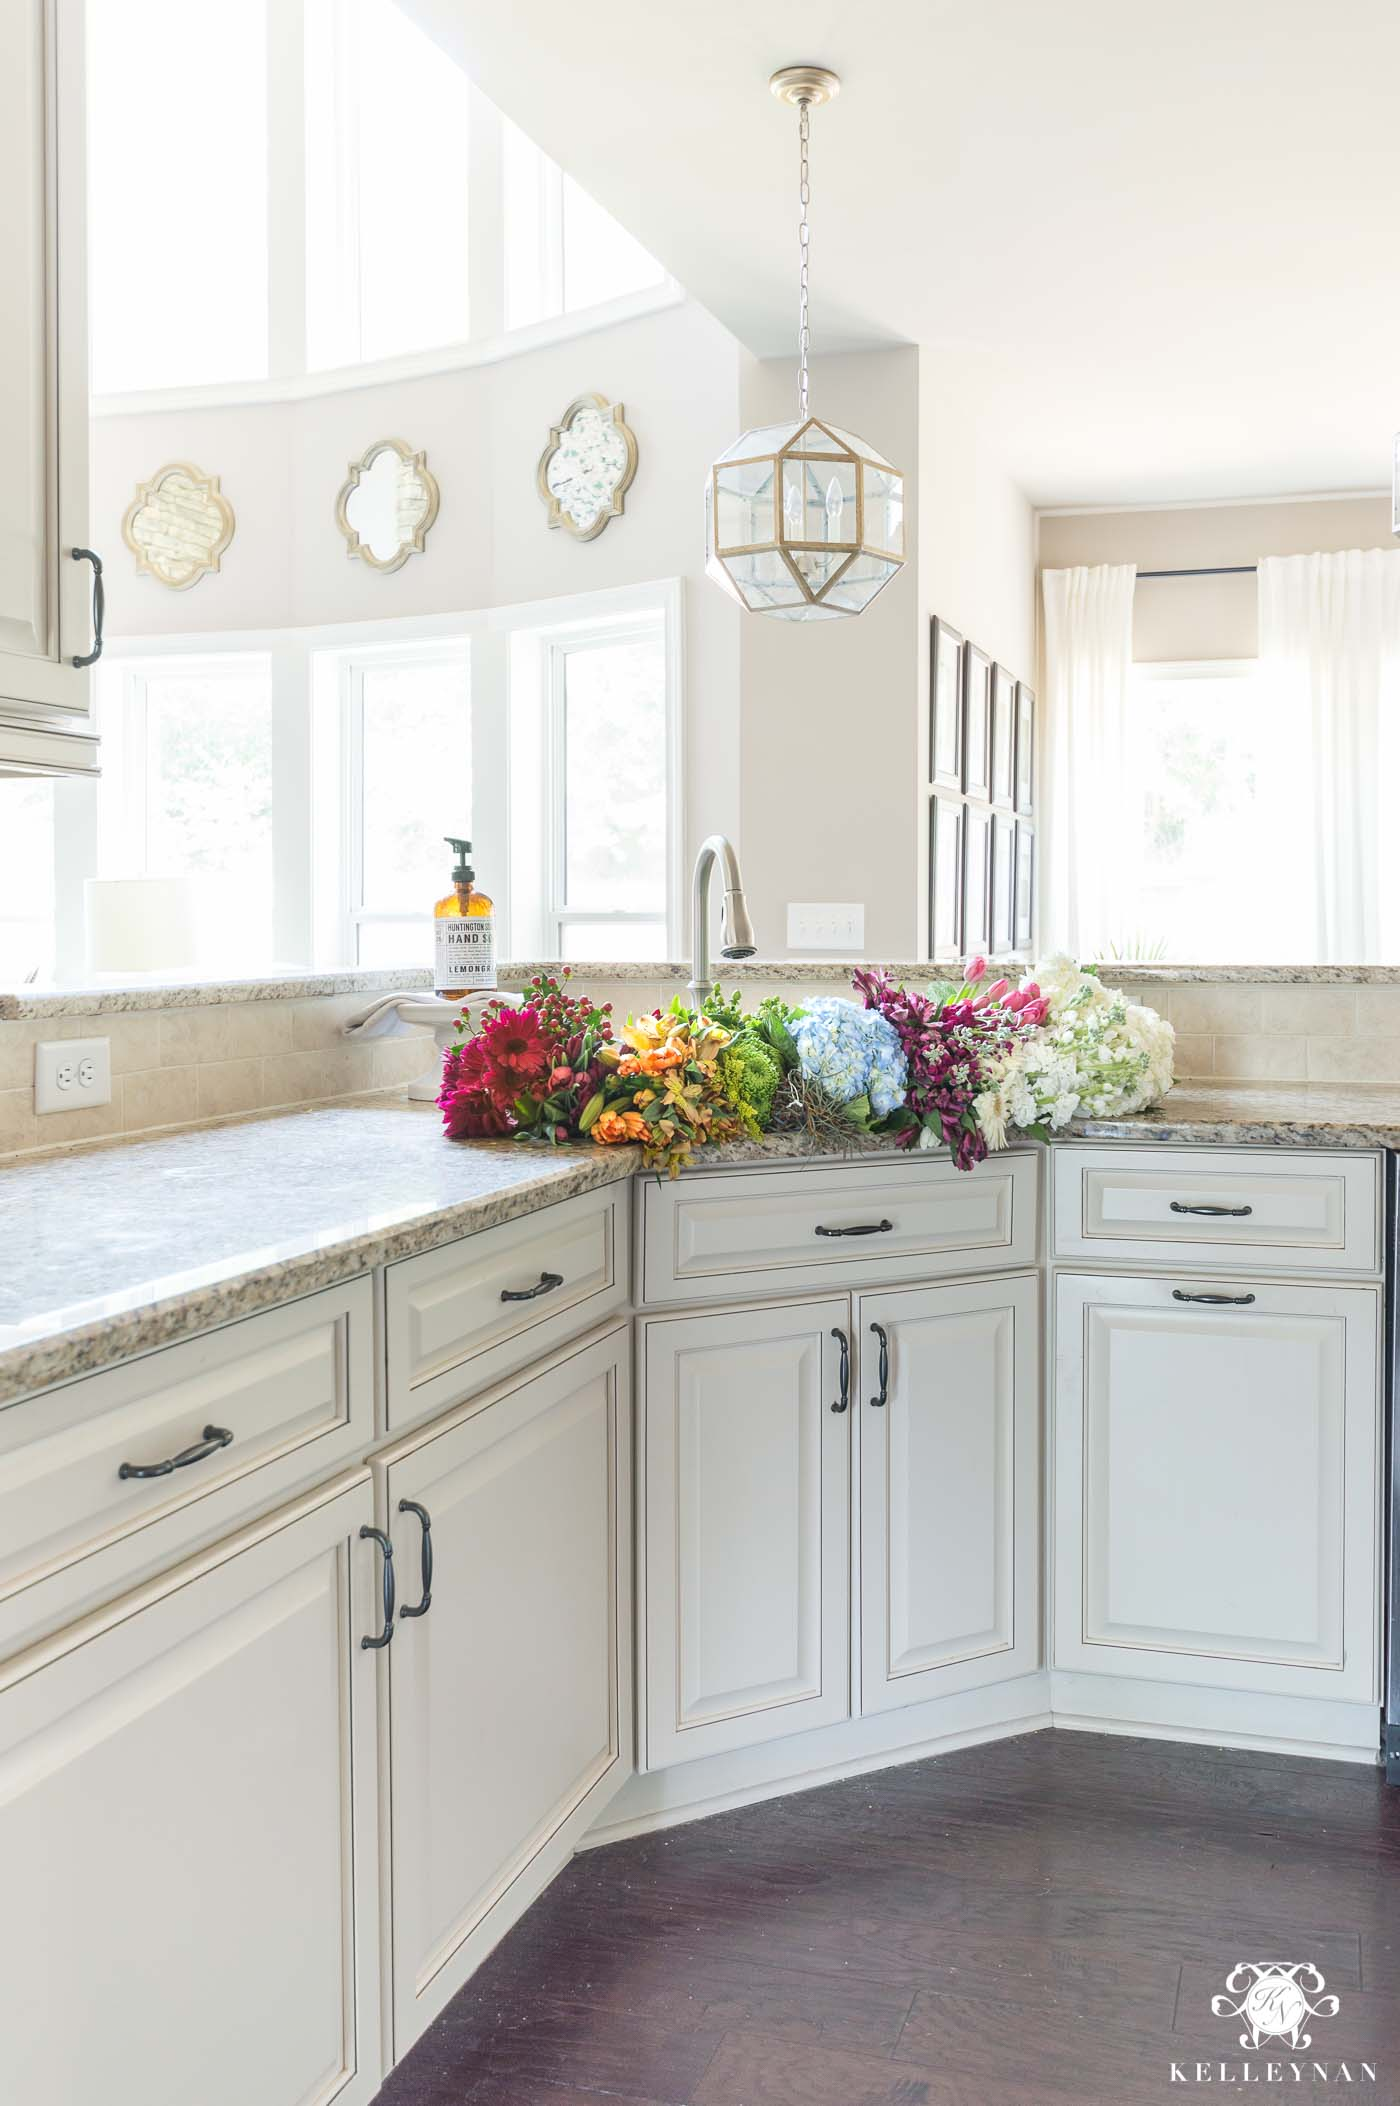 Traditional Kitchens With White Cabinets The Plan To Bring Modern Touches Into A Traditional Cream Kitchen